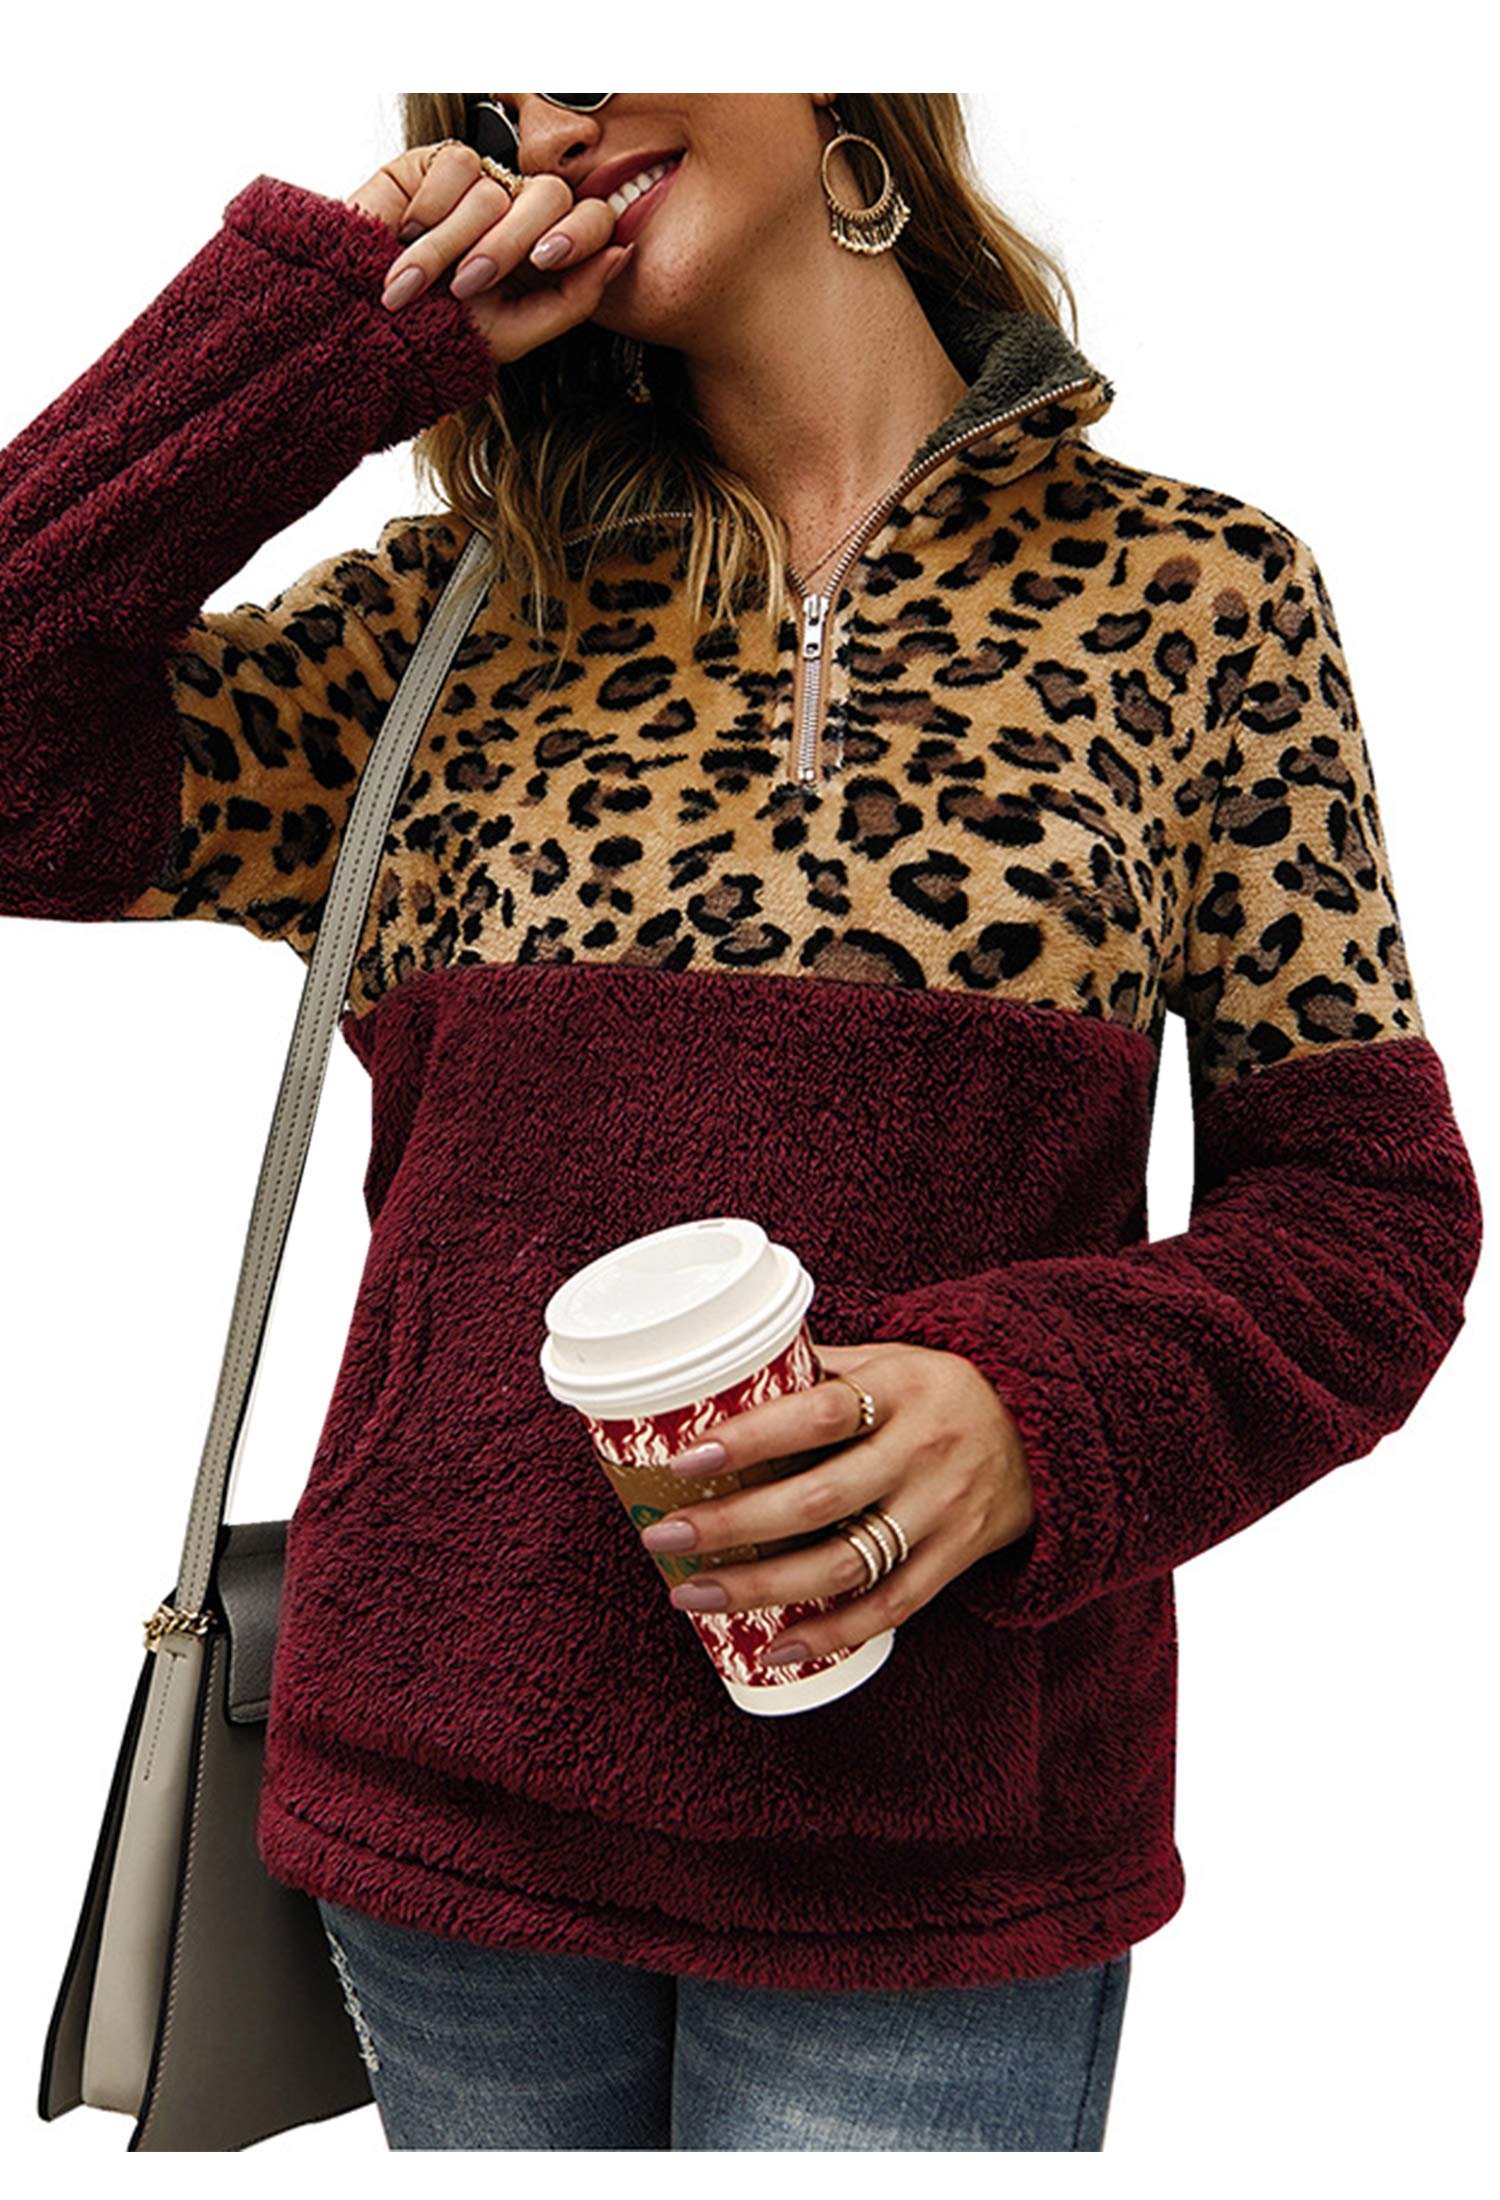 Angashion Womens Long Sleeve Half Zip Up Warm Fuzzy Leopard Print Patchwork Fleece Pullover Tops with Pocket for Winter Wine Red M by Angashion